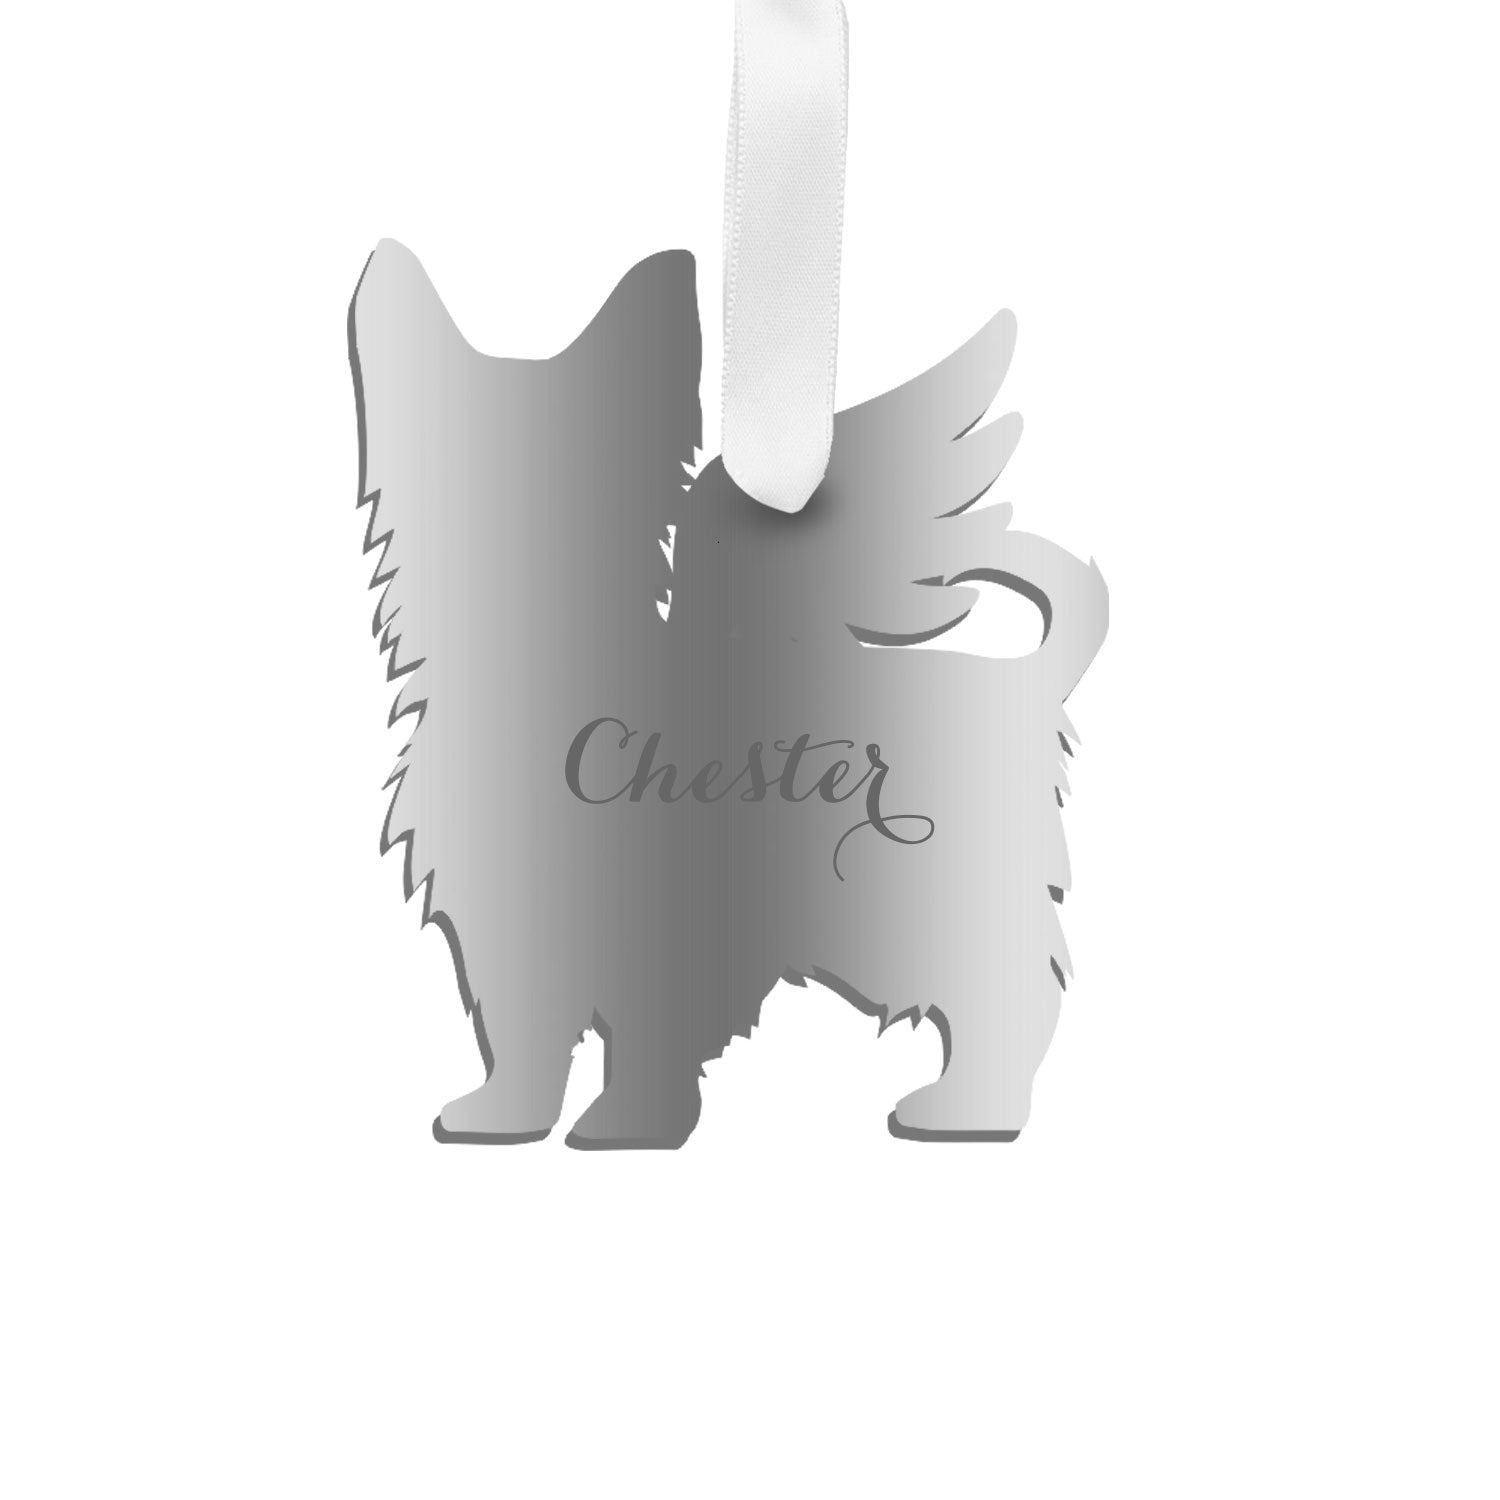 Moon and Lola - Personalized Angel Yorkshire Terrier Ornament with wings in silver